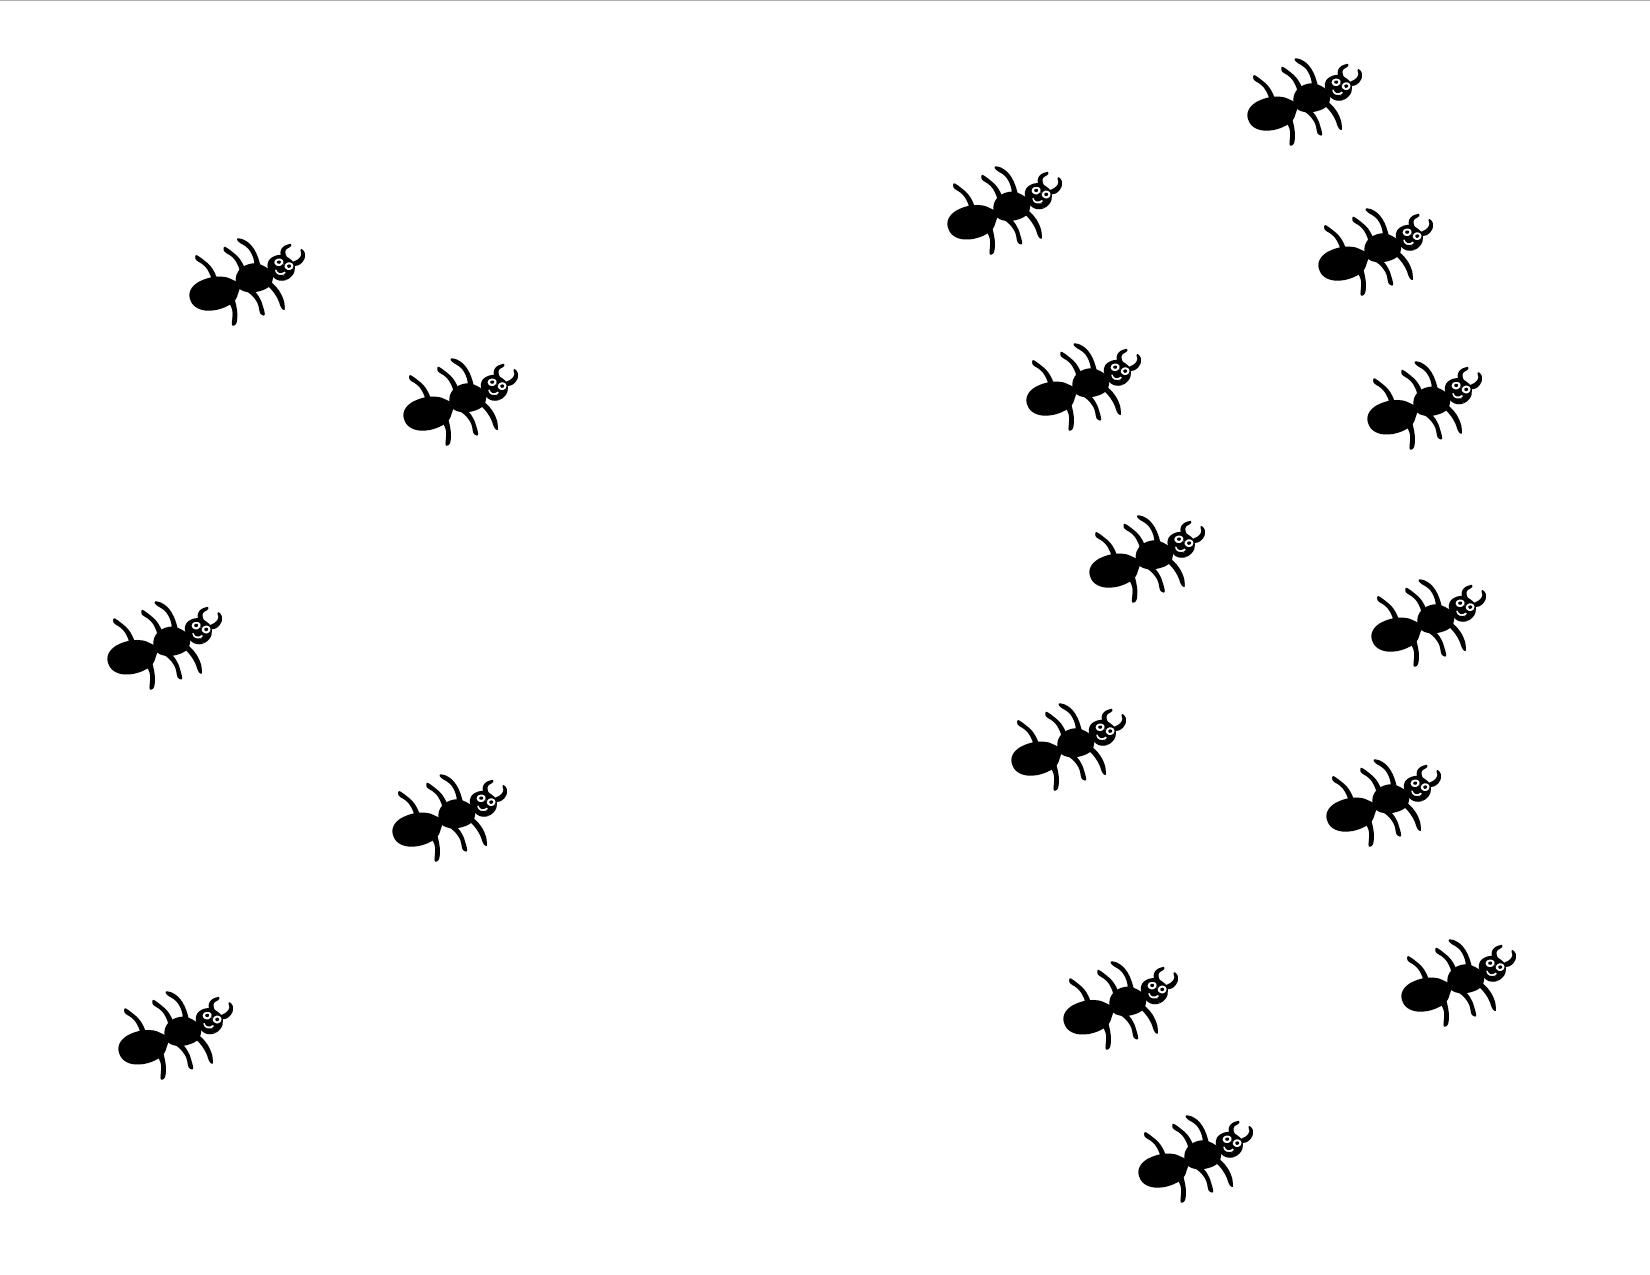 Squish The Ant Counting Print Cut In Half Use Half